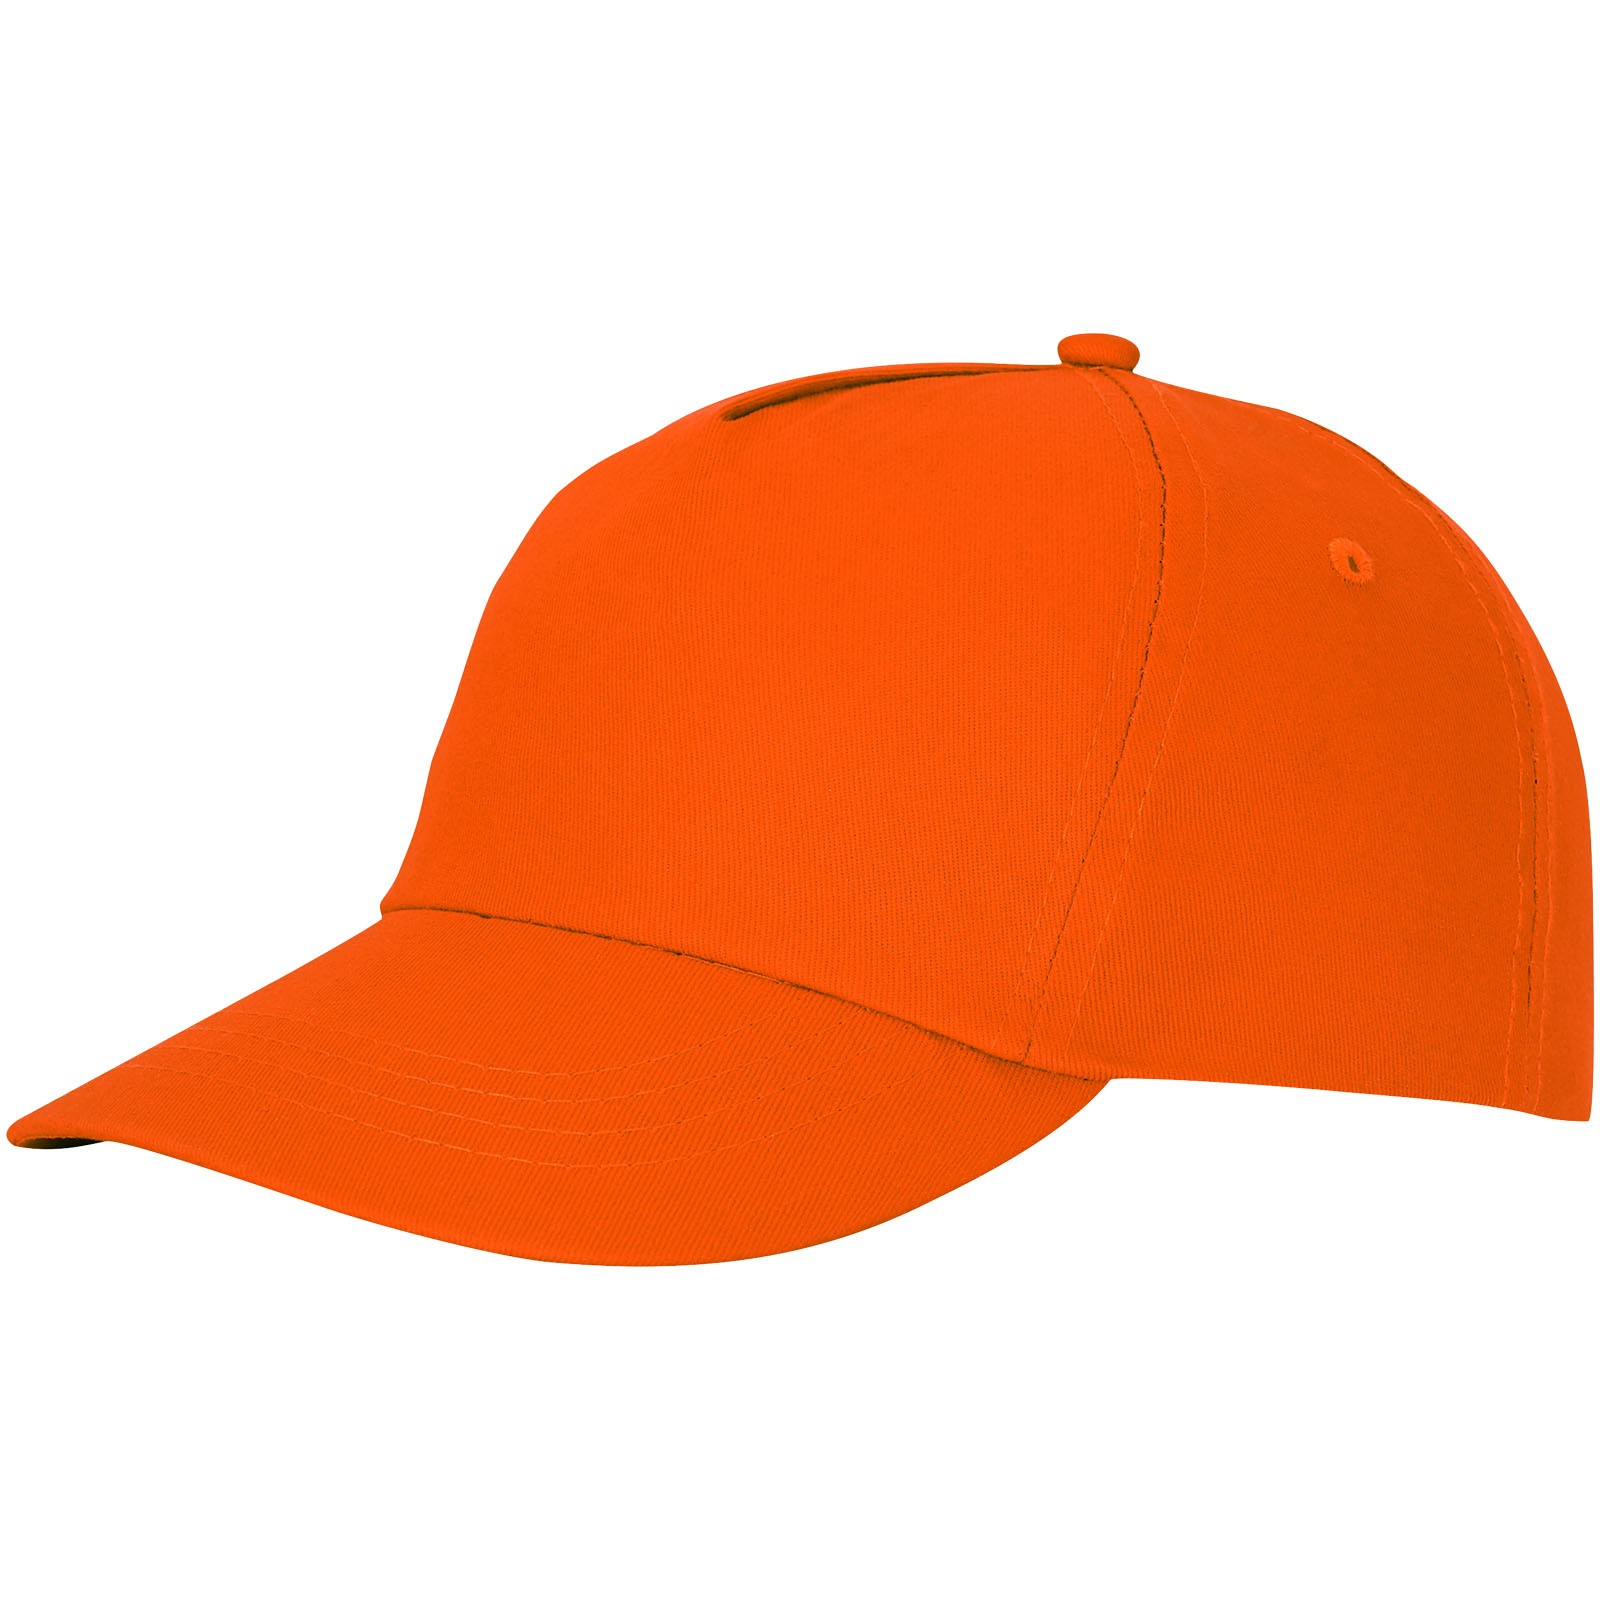 Feniks 5 panel cap - Orange